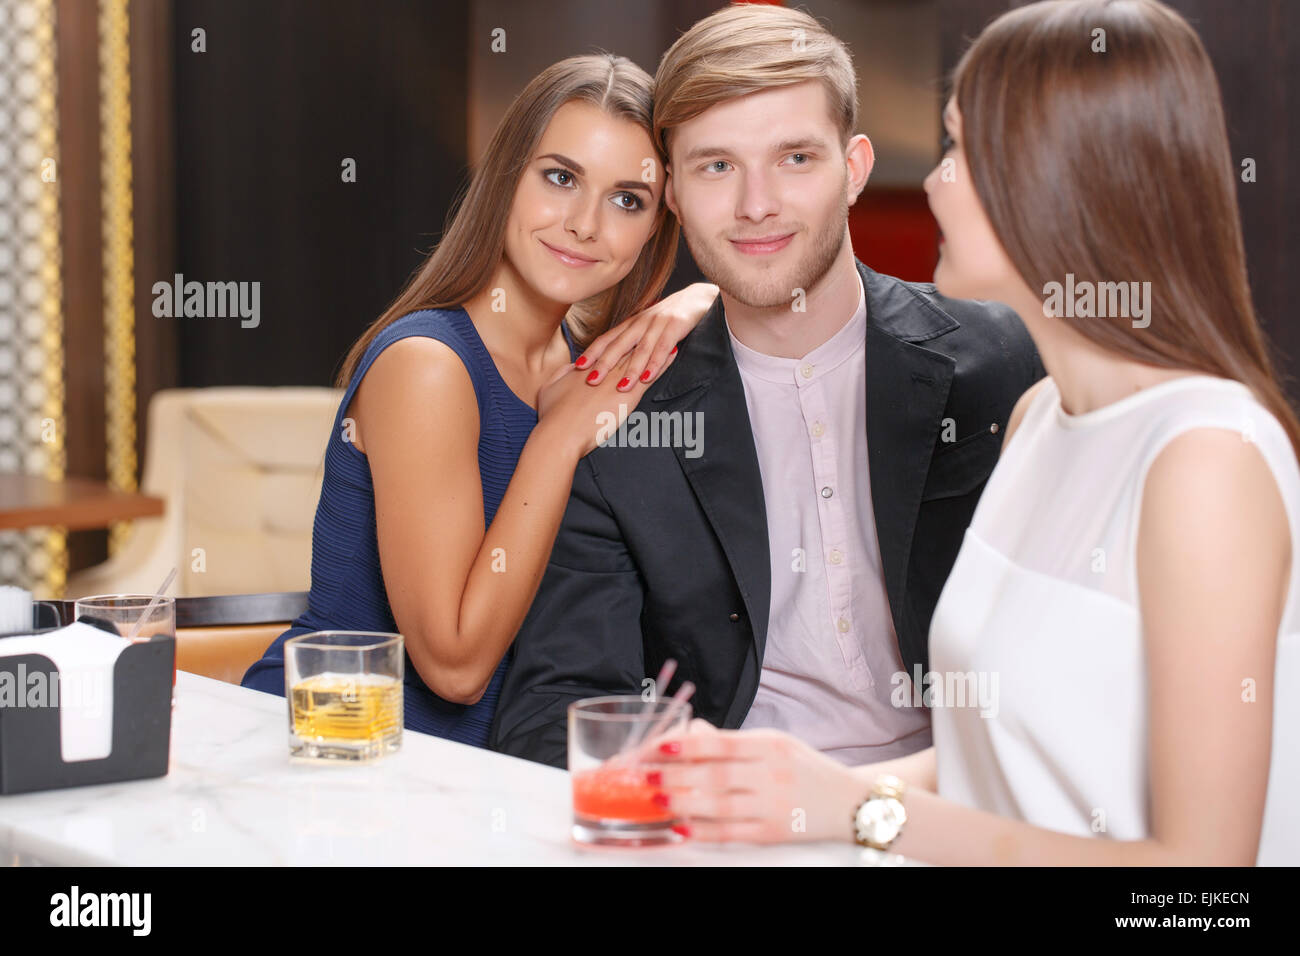 Meeting with friends in the bar - Stock Image